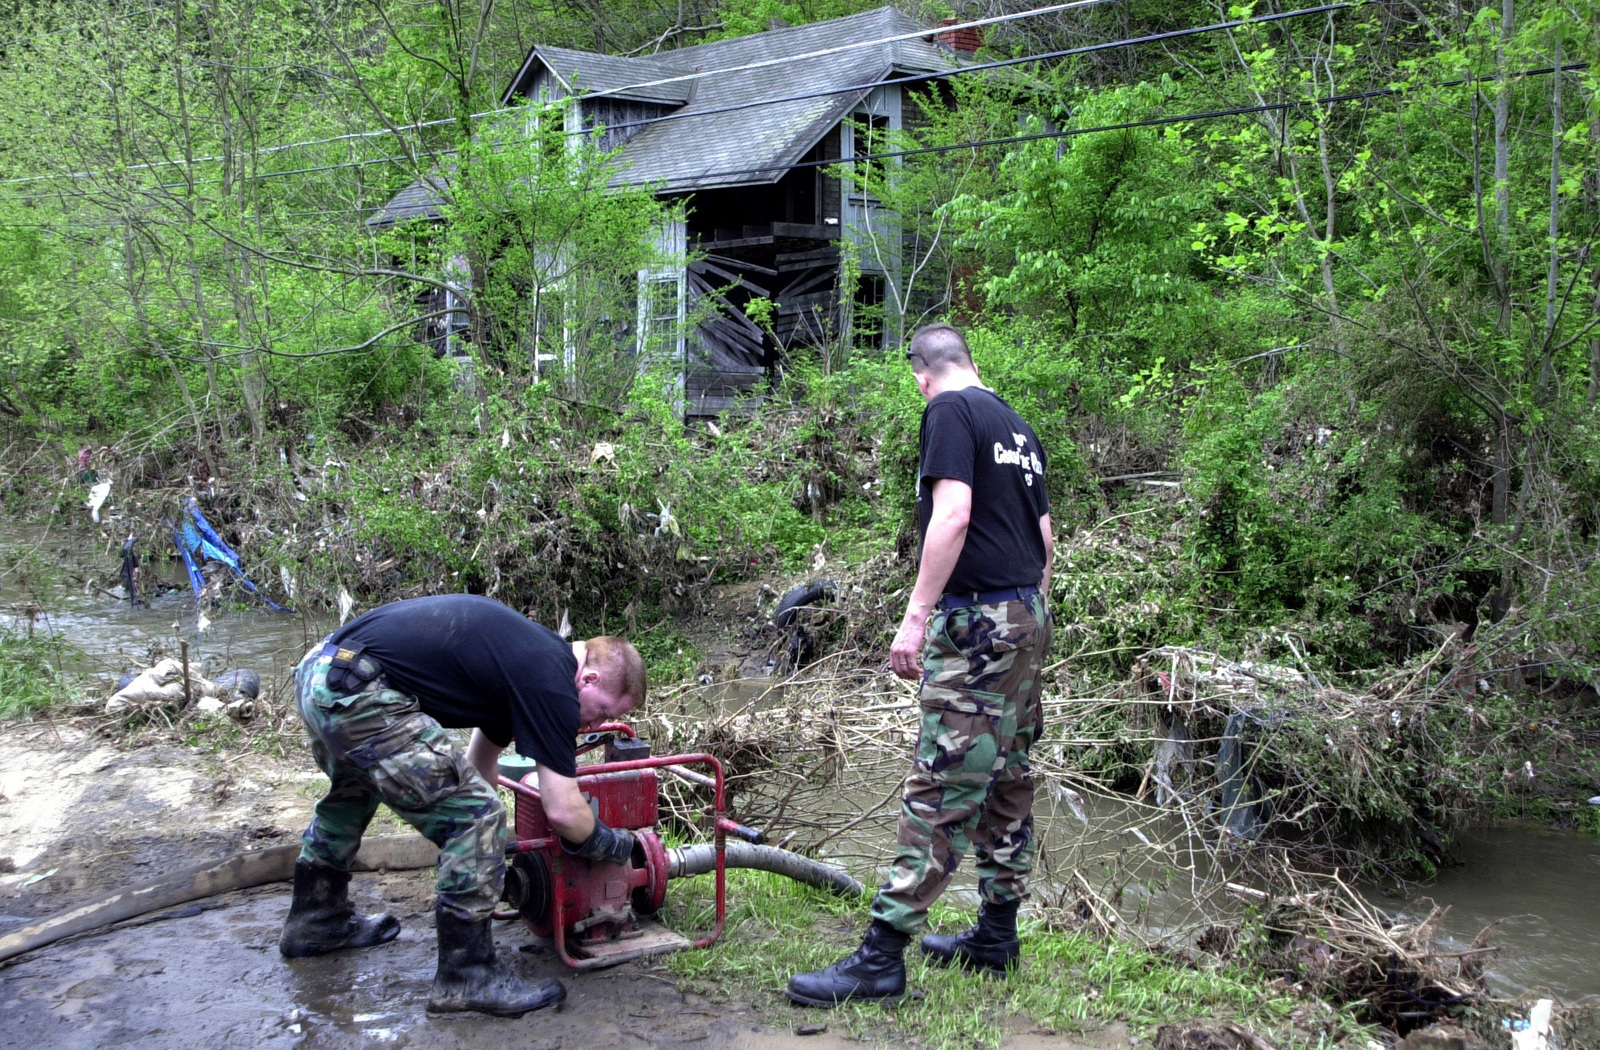 US Air Force (USAF) Firefighters from the 130th Airlift Wing (AW), West Virginia (WV), Air National Guard (ANG), pump water from the nearby creek to fill a fire truck. Firefighters from the 130th AW volunteered their services to the Coalwood, West Virginia Volunteer Fire Department after their community was ravished by flood waters